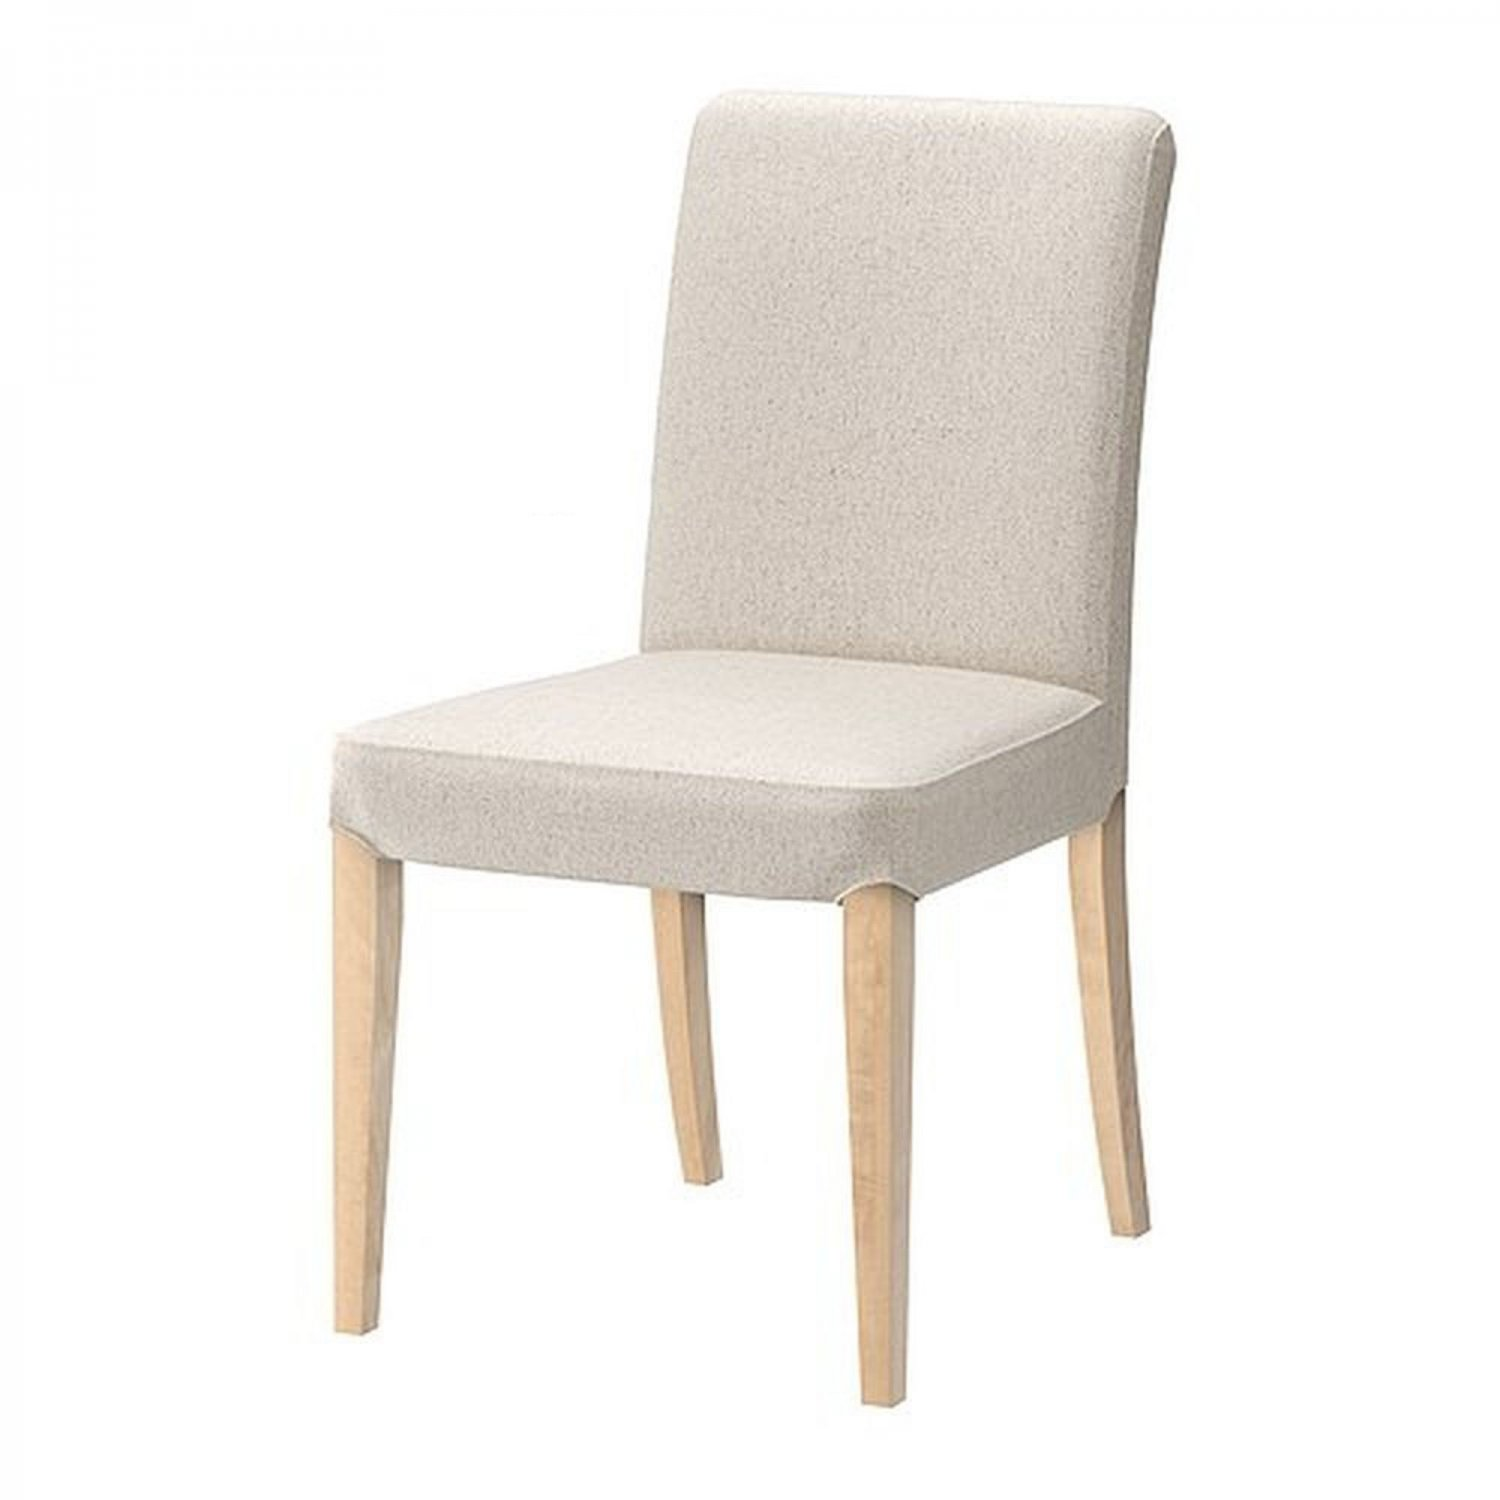 chair covers ikea uk patio cushions kohls henriksdal slipcover cover 21 quot 54cm linneryd